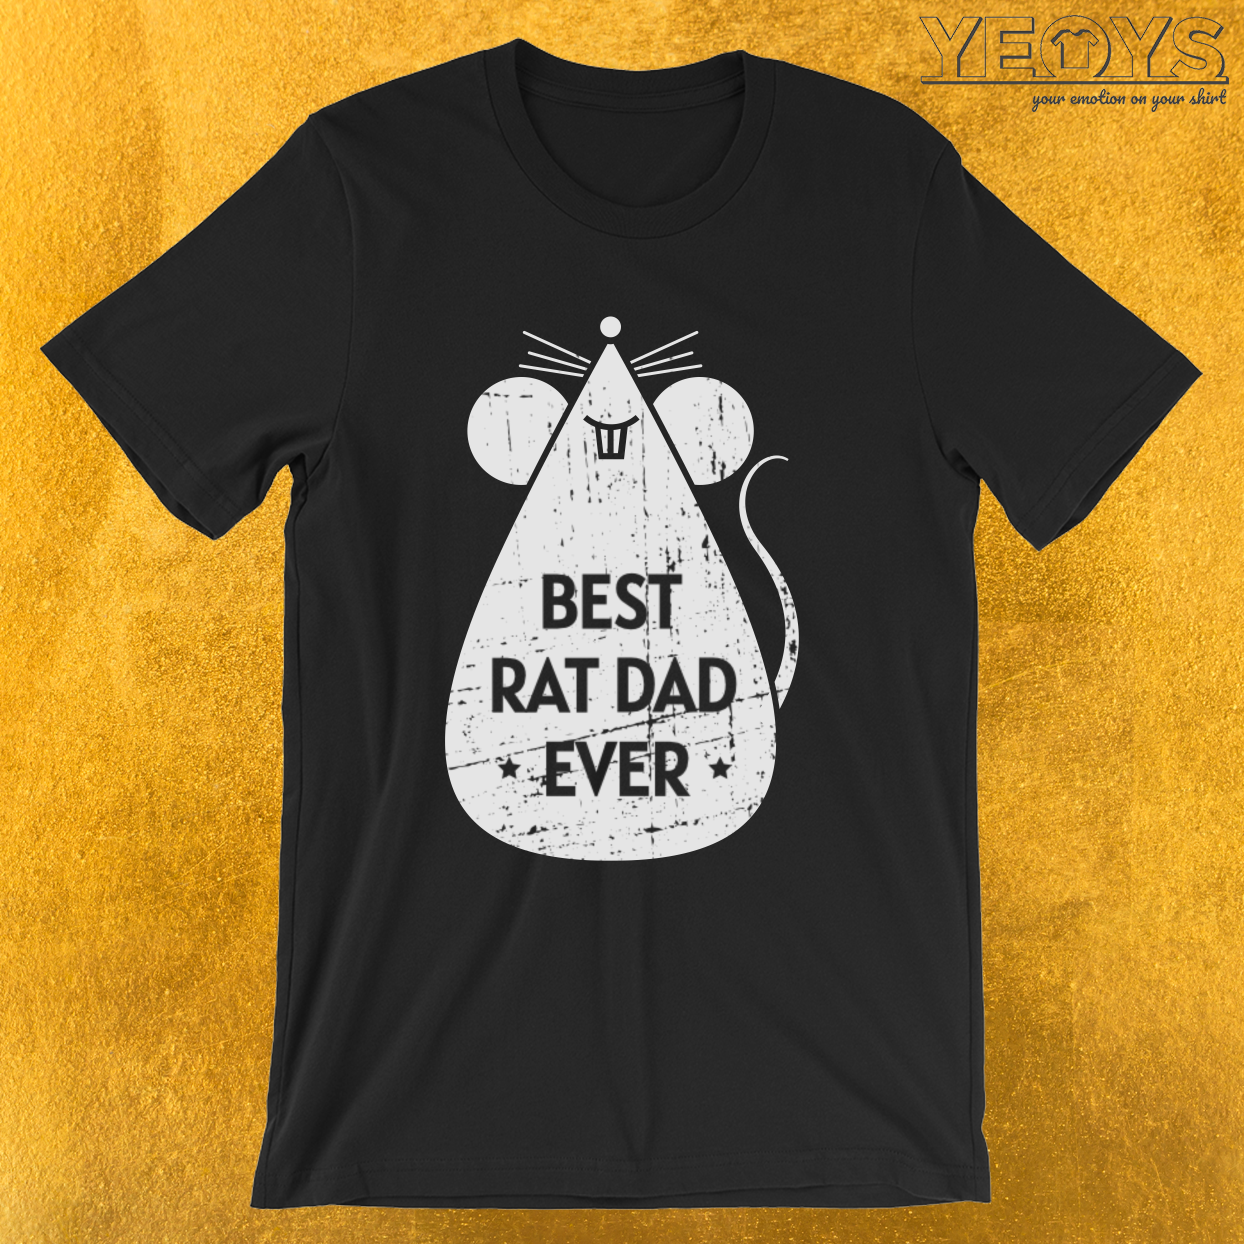 Best Rat Dad Ever – Cute Rat Tee